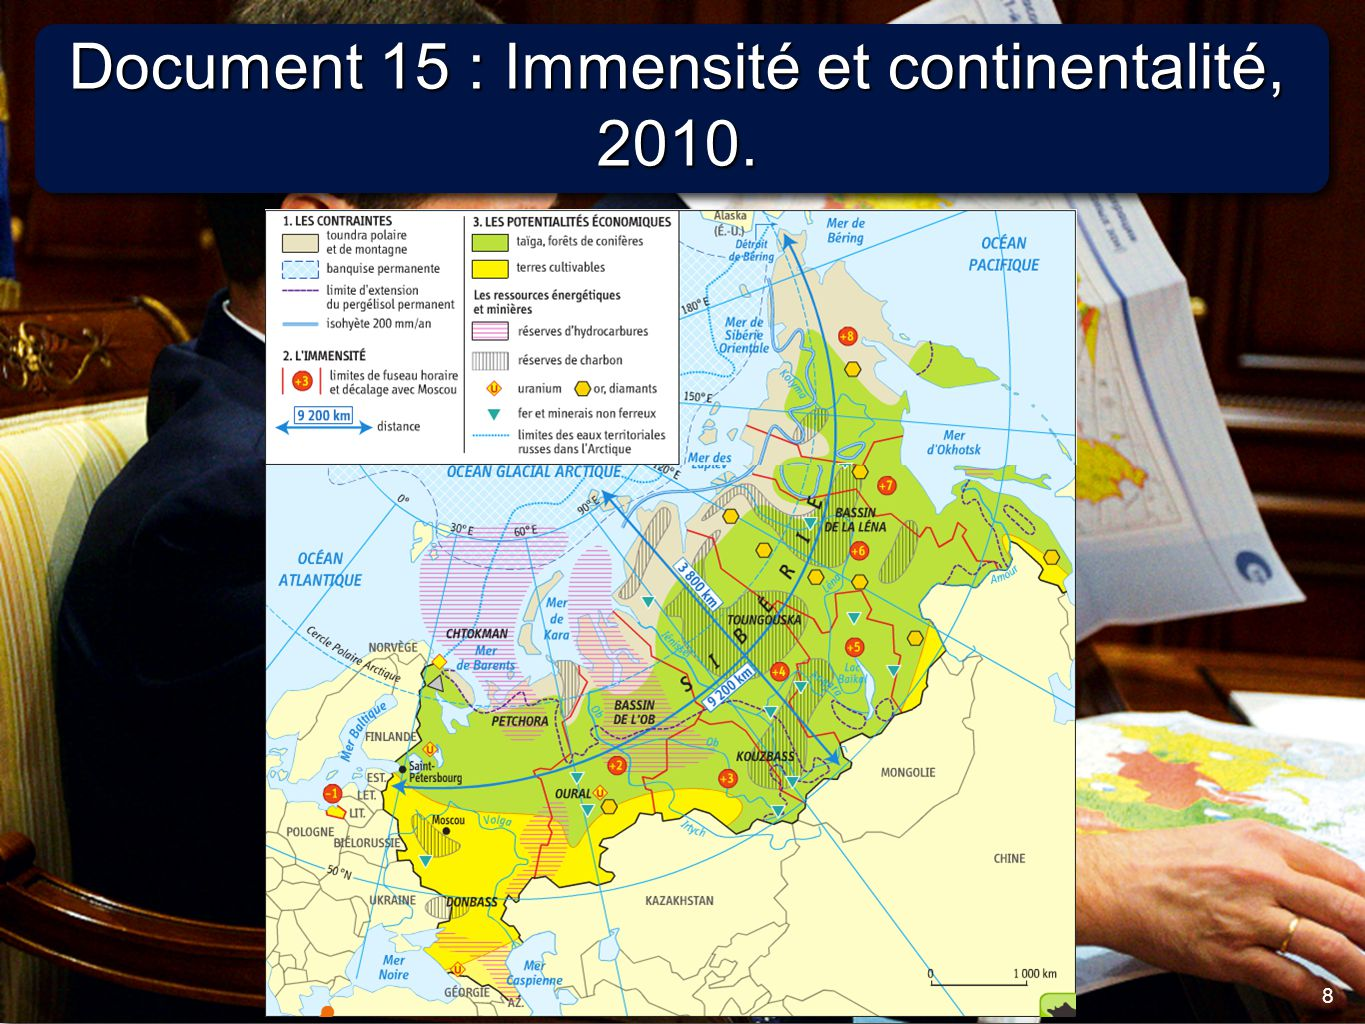 Document 15 : Immensité et continentalité, 2010.